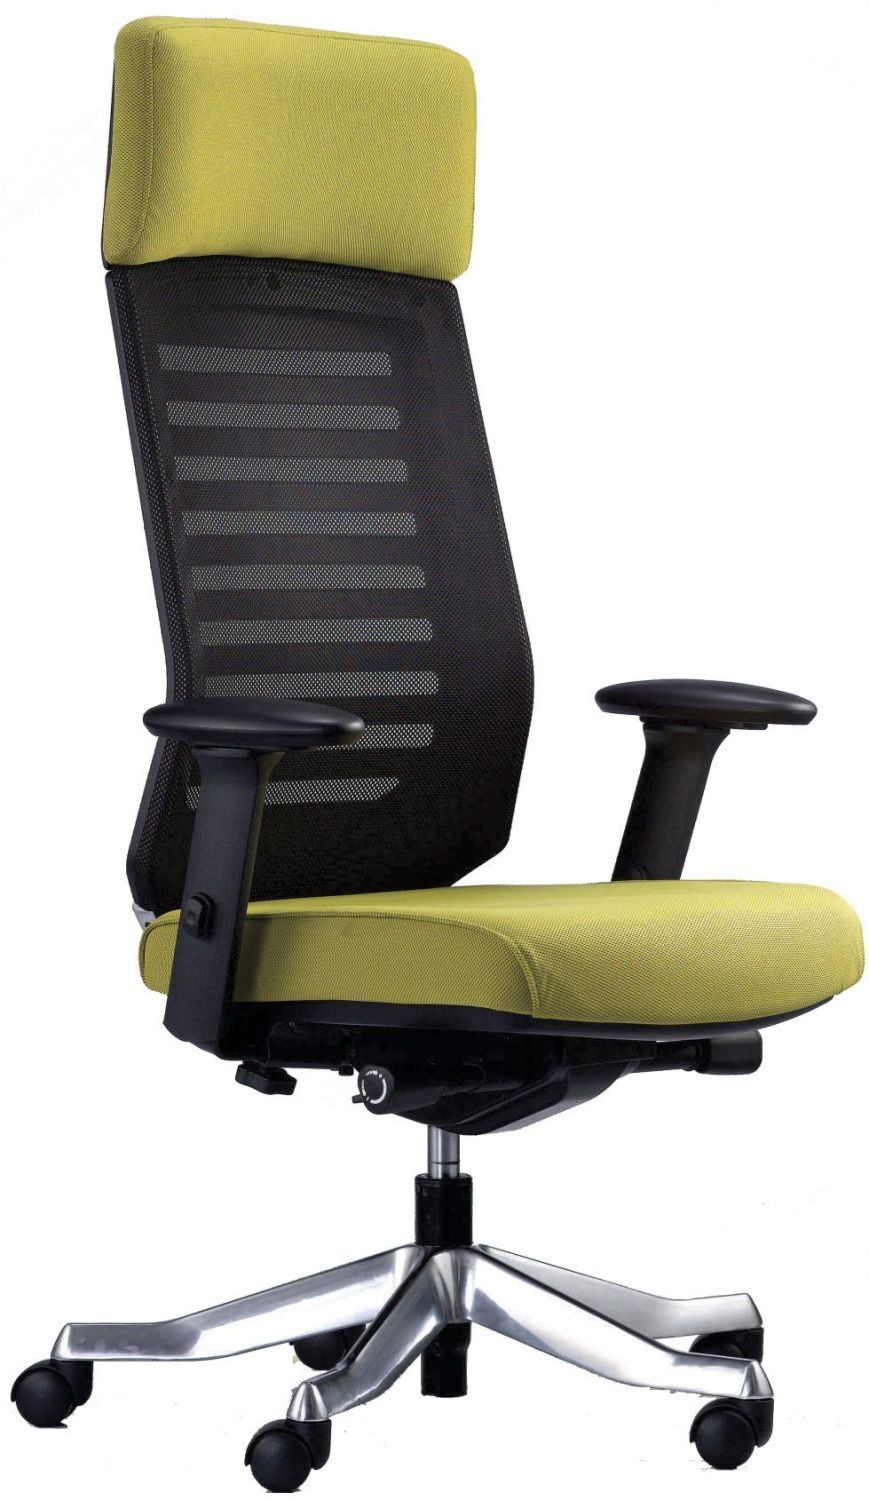 An image of Vertex Extra High Mesh Back Task Chair - band 1 upholstery